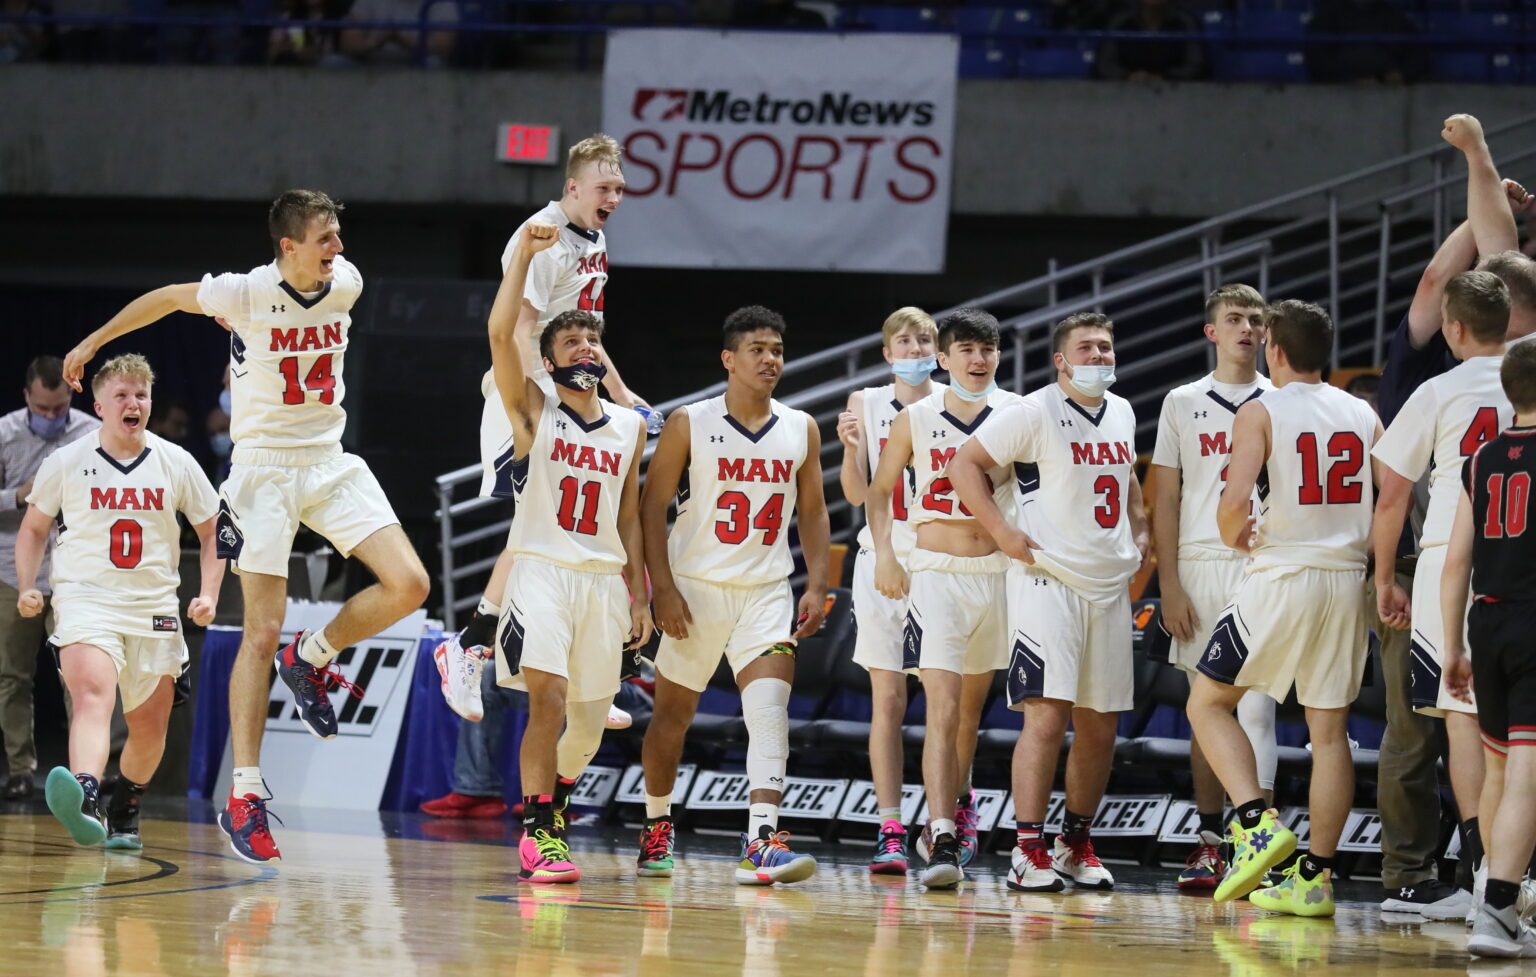 HIGH SCHOOL BASKETBALL: Man reaches first title game in 31 years